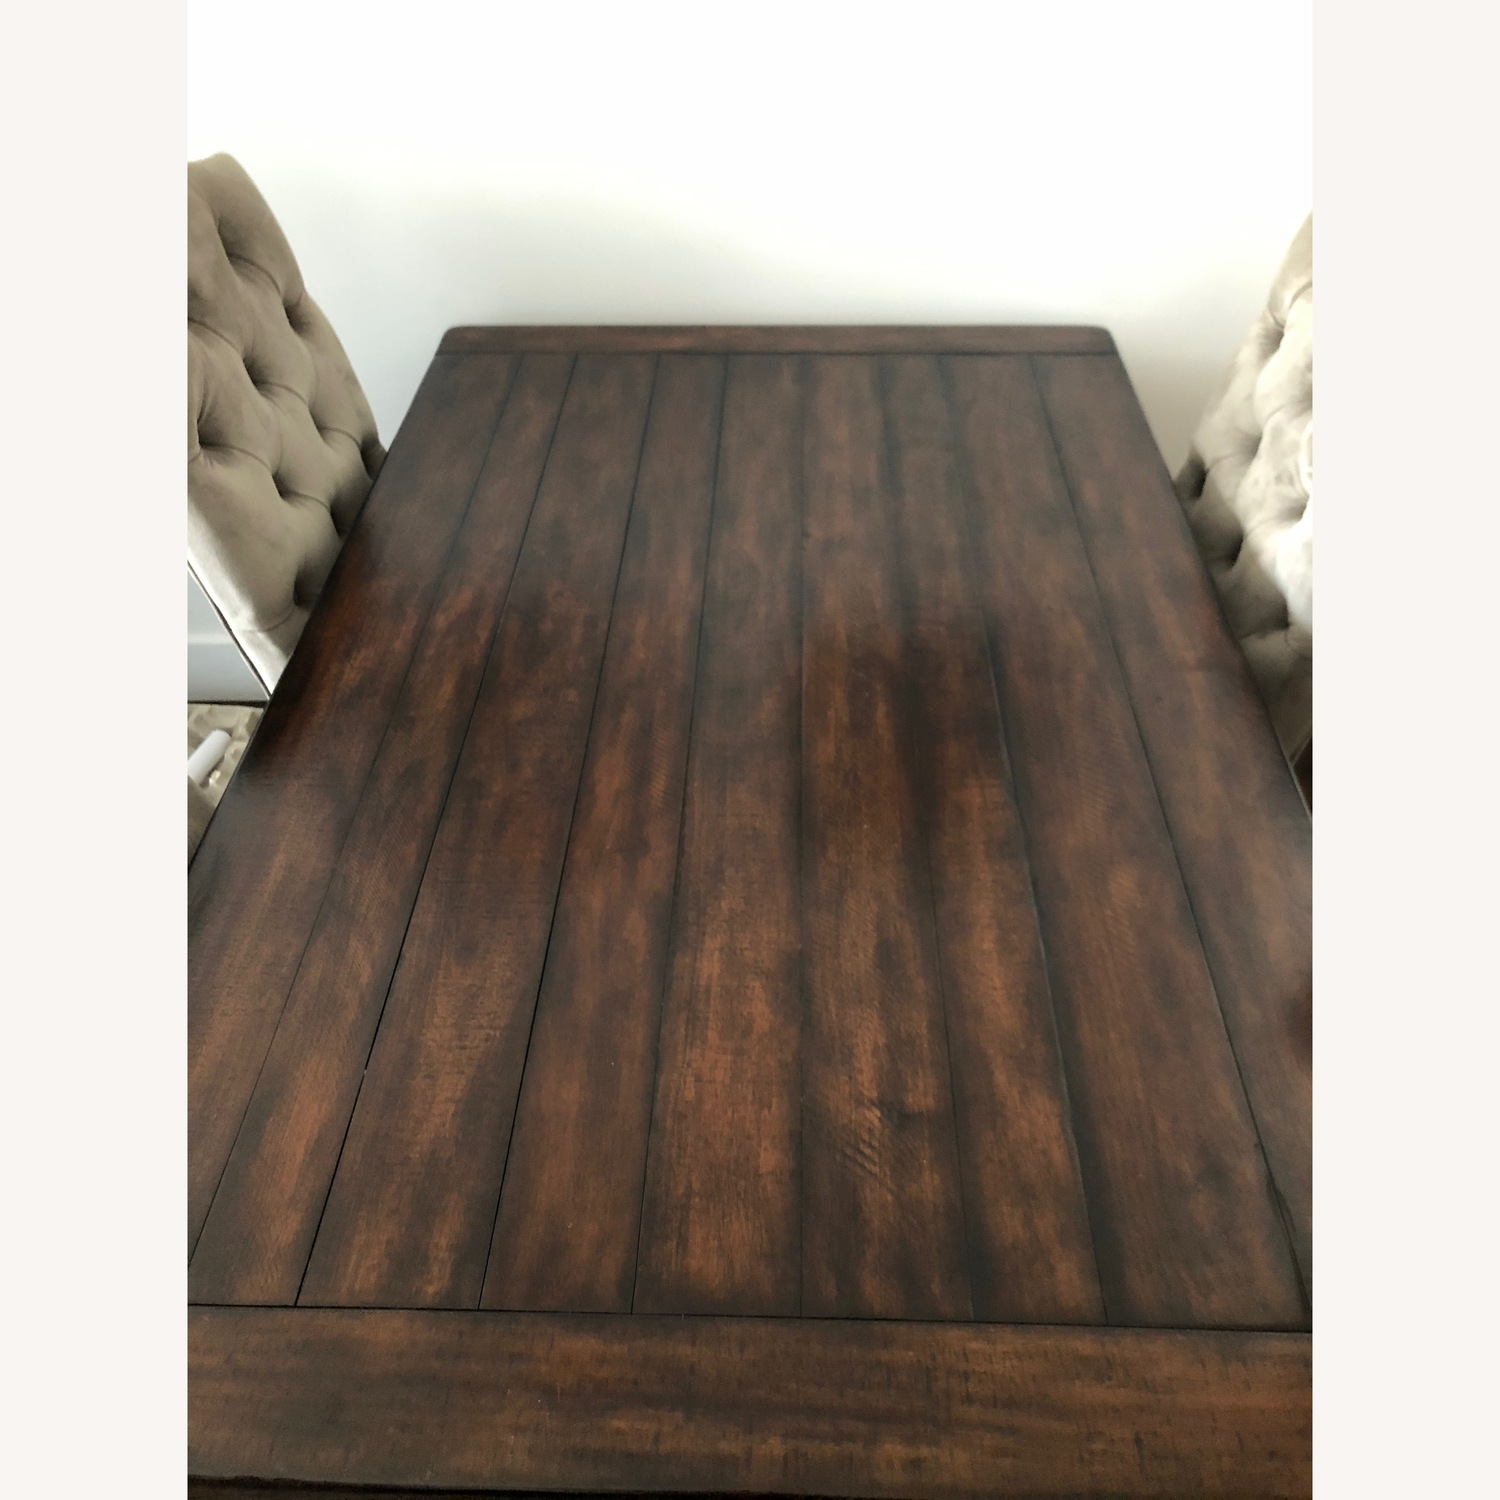 Crate & Barrel Dark Wood Table with Leaf - image-2